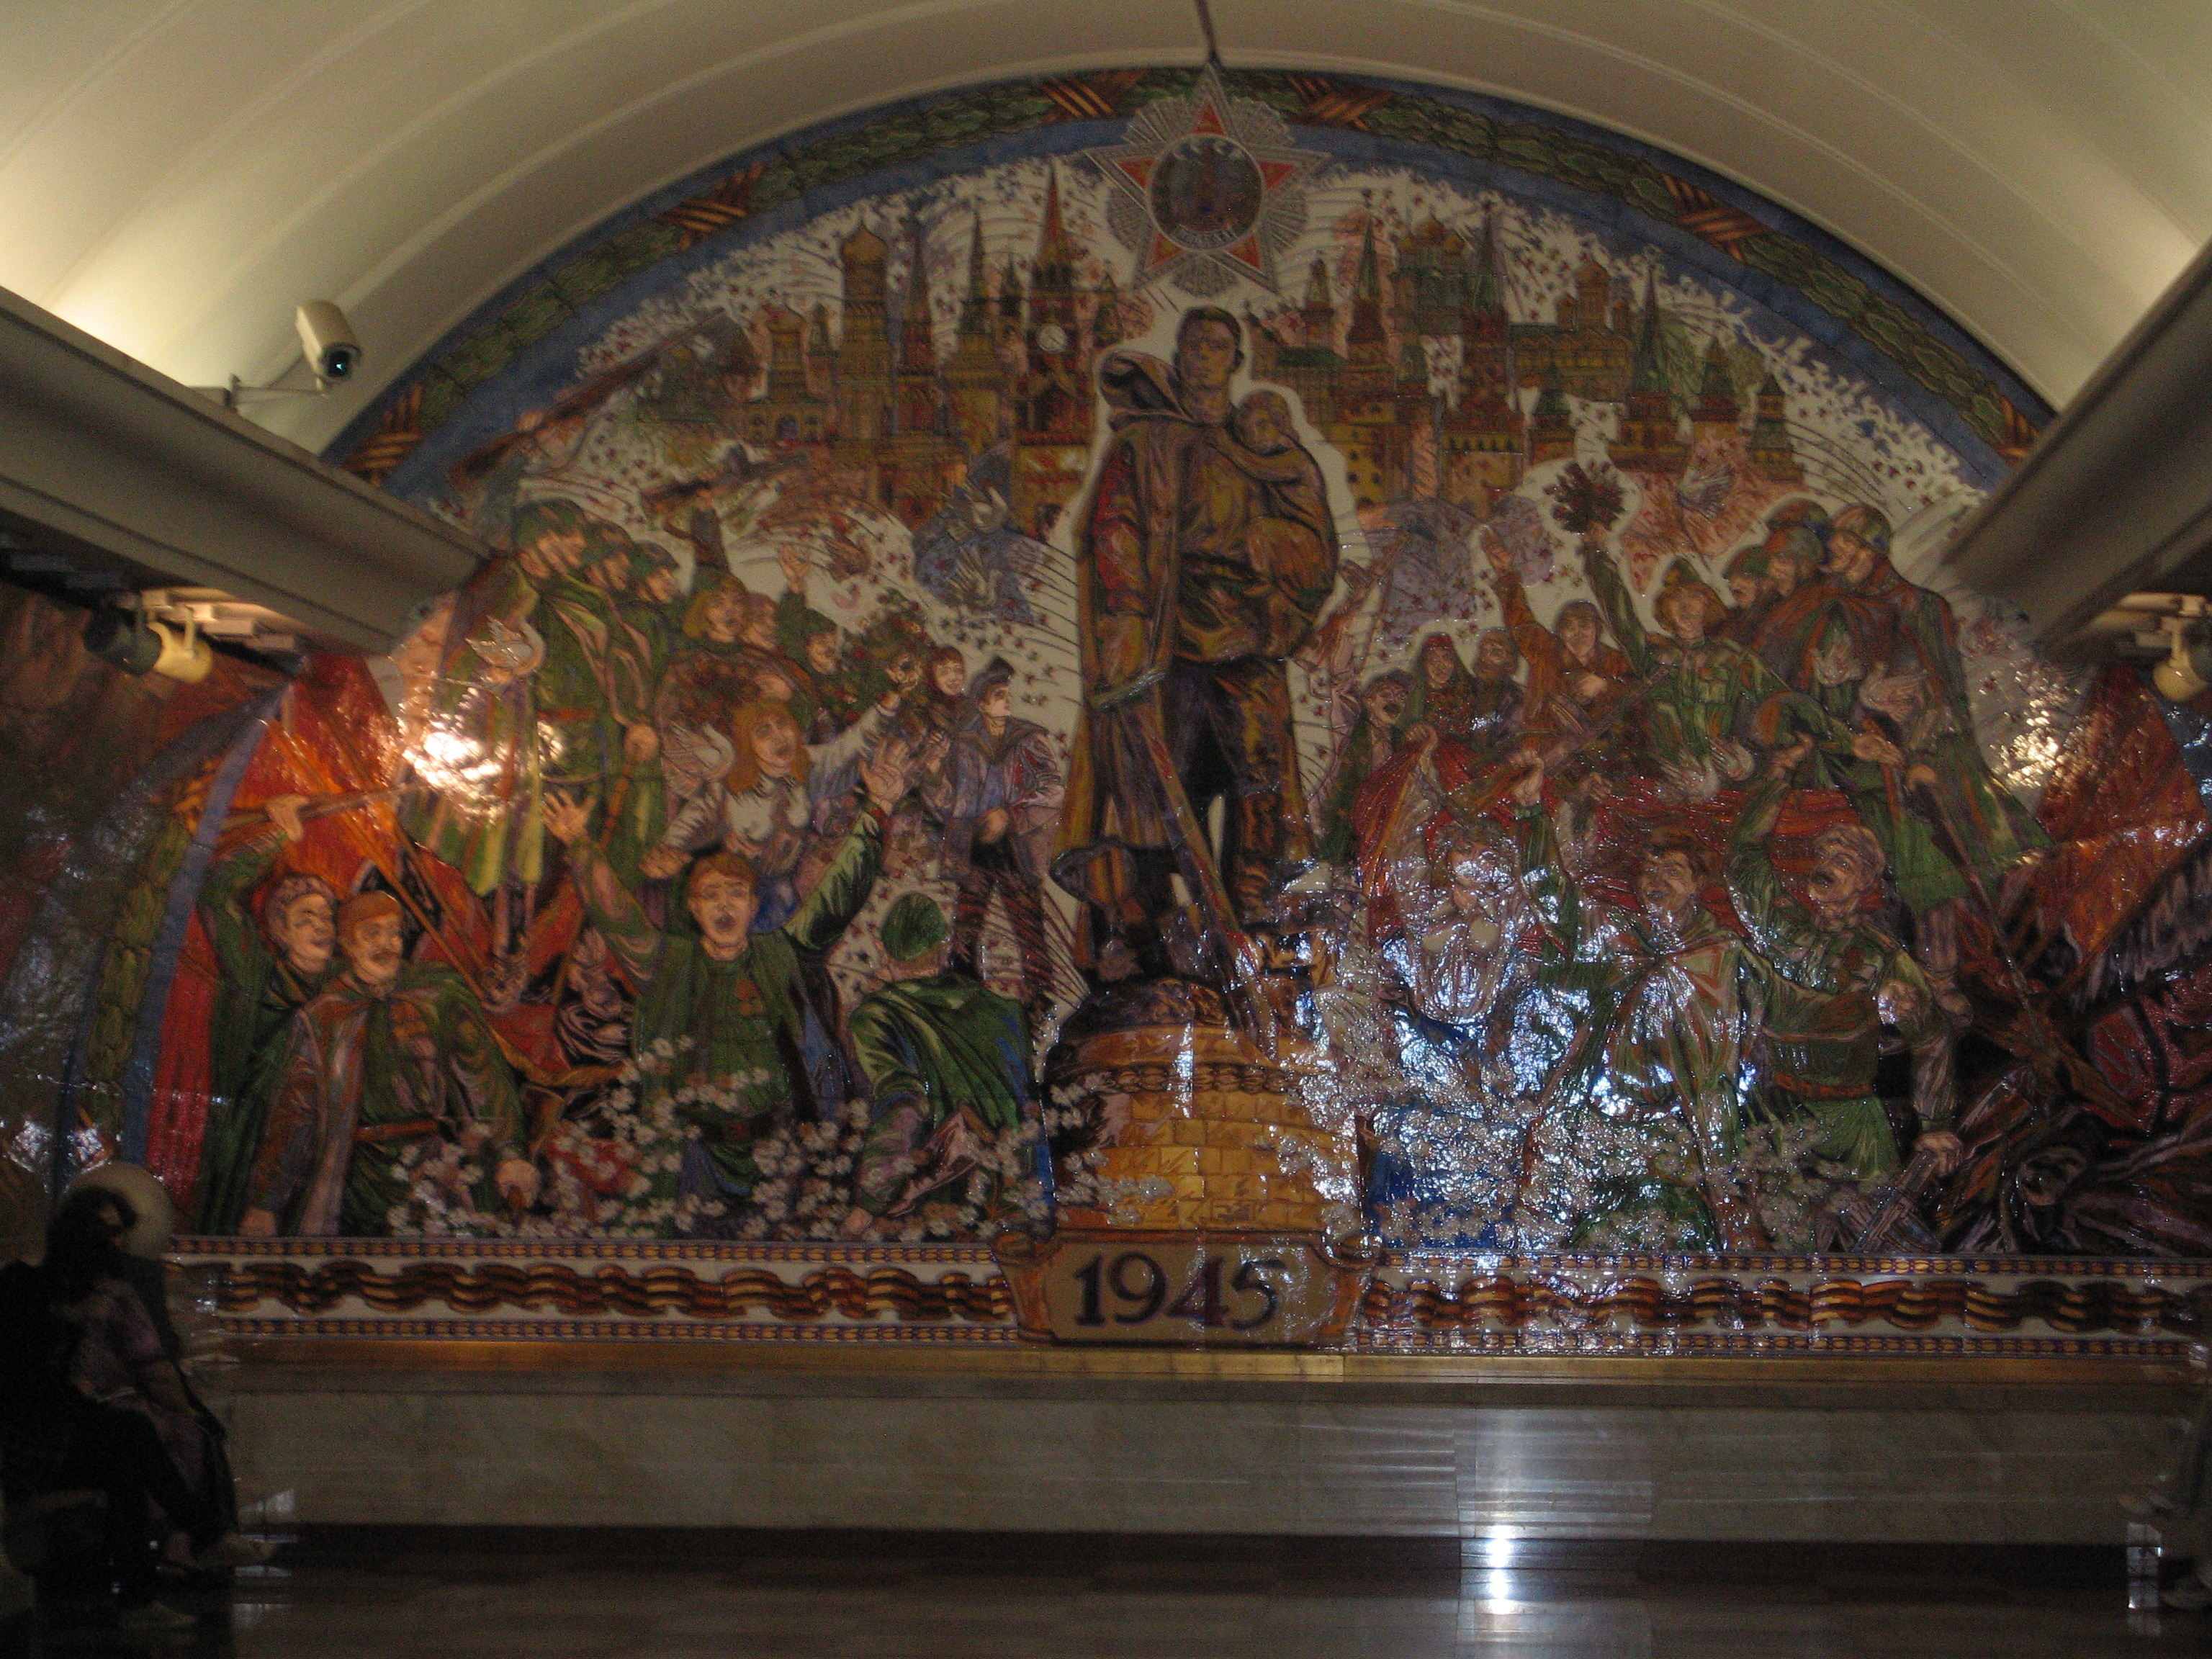 Victory Park, a new station that opened in 2003, celebrates victory over Russia's two invaders: Napoleon in 1812 on one side and the Nazis in 1945 (shown here) on the other side.